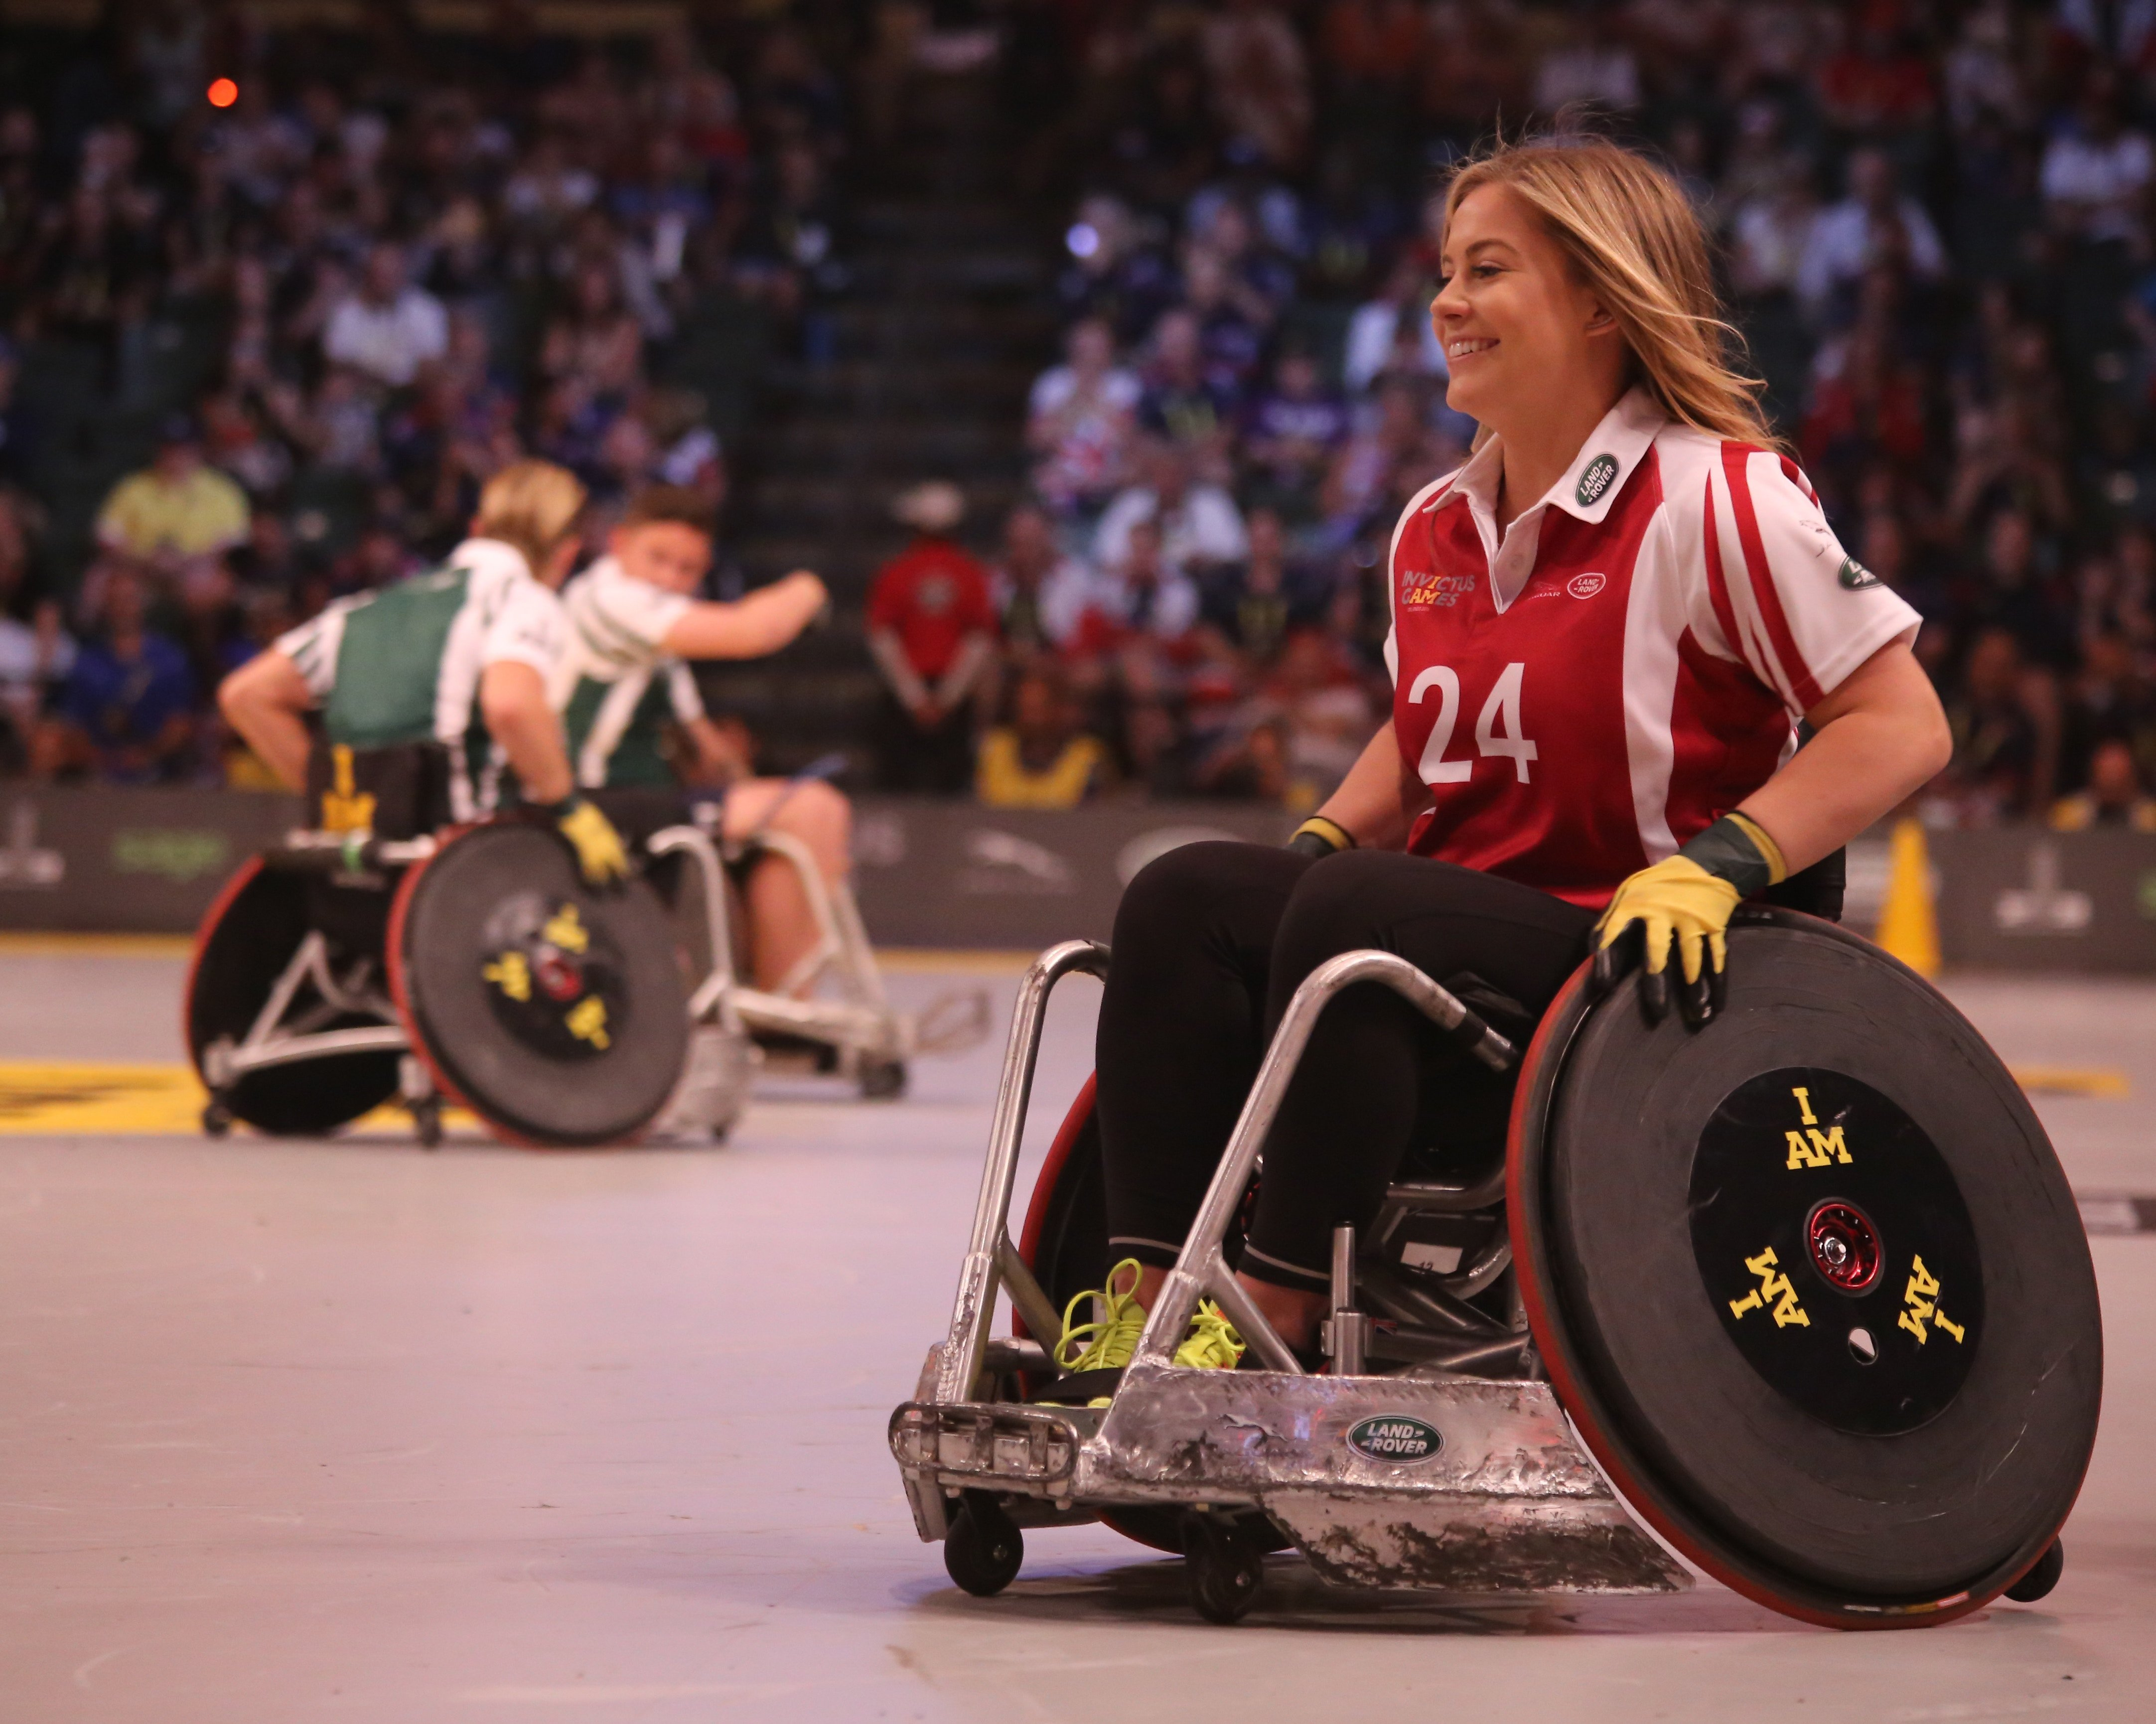 An athlete plays an adaptive sport while using her wheelchair.